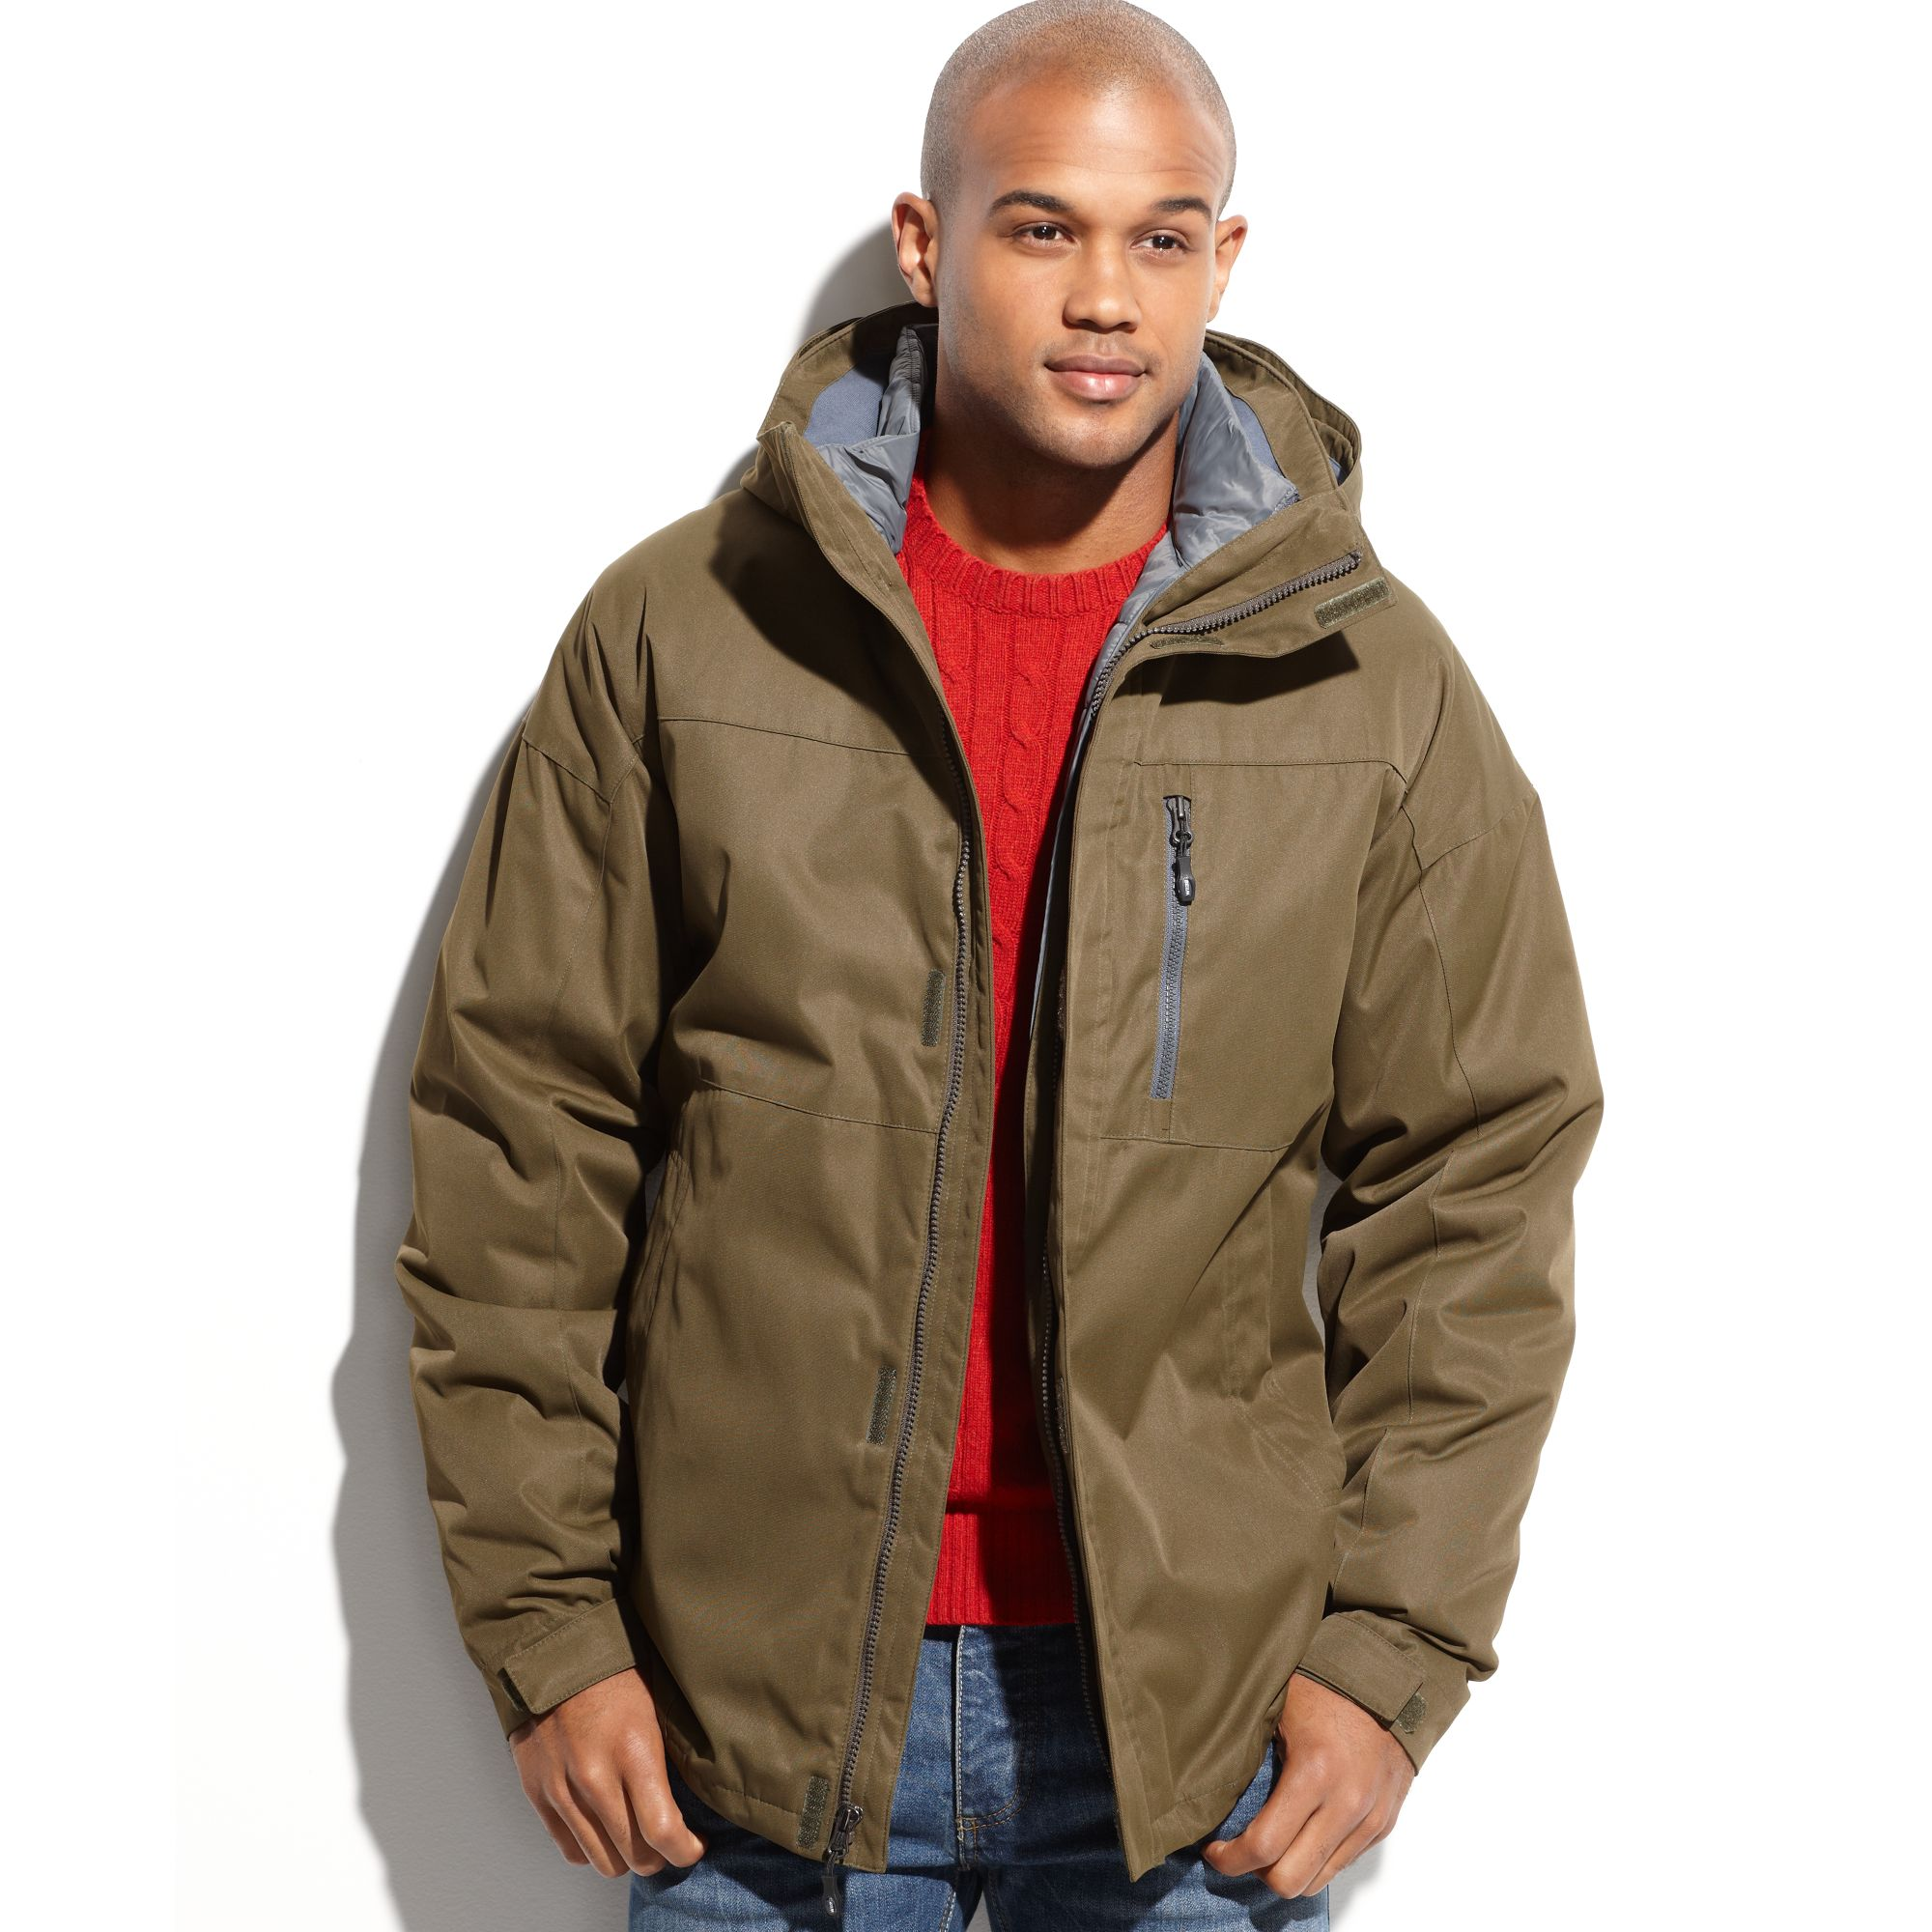 Weatherproof 32 Degrees Coat Twill Tech Midweight 3in1